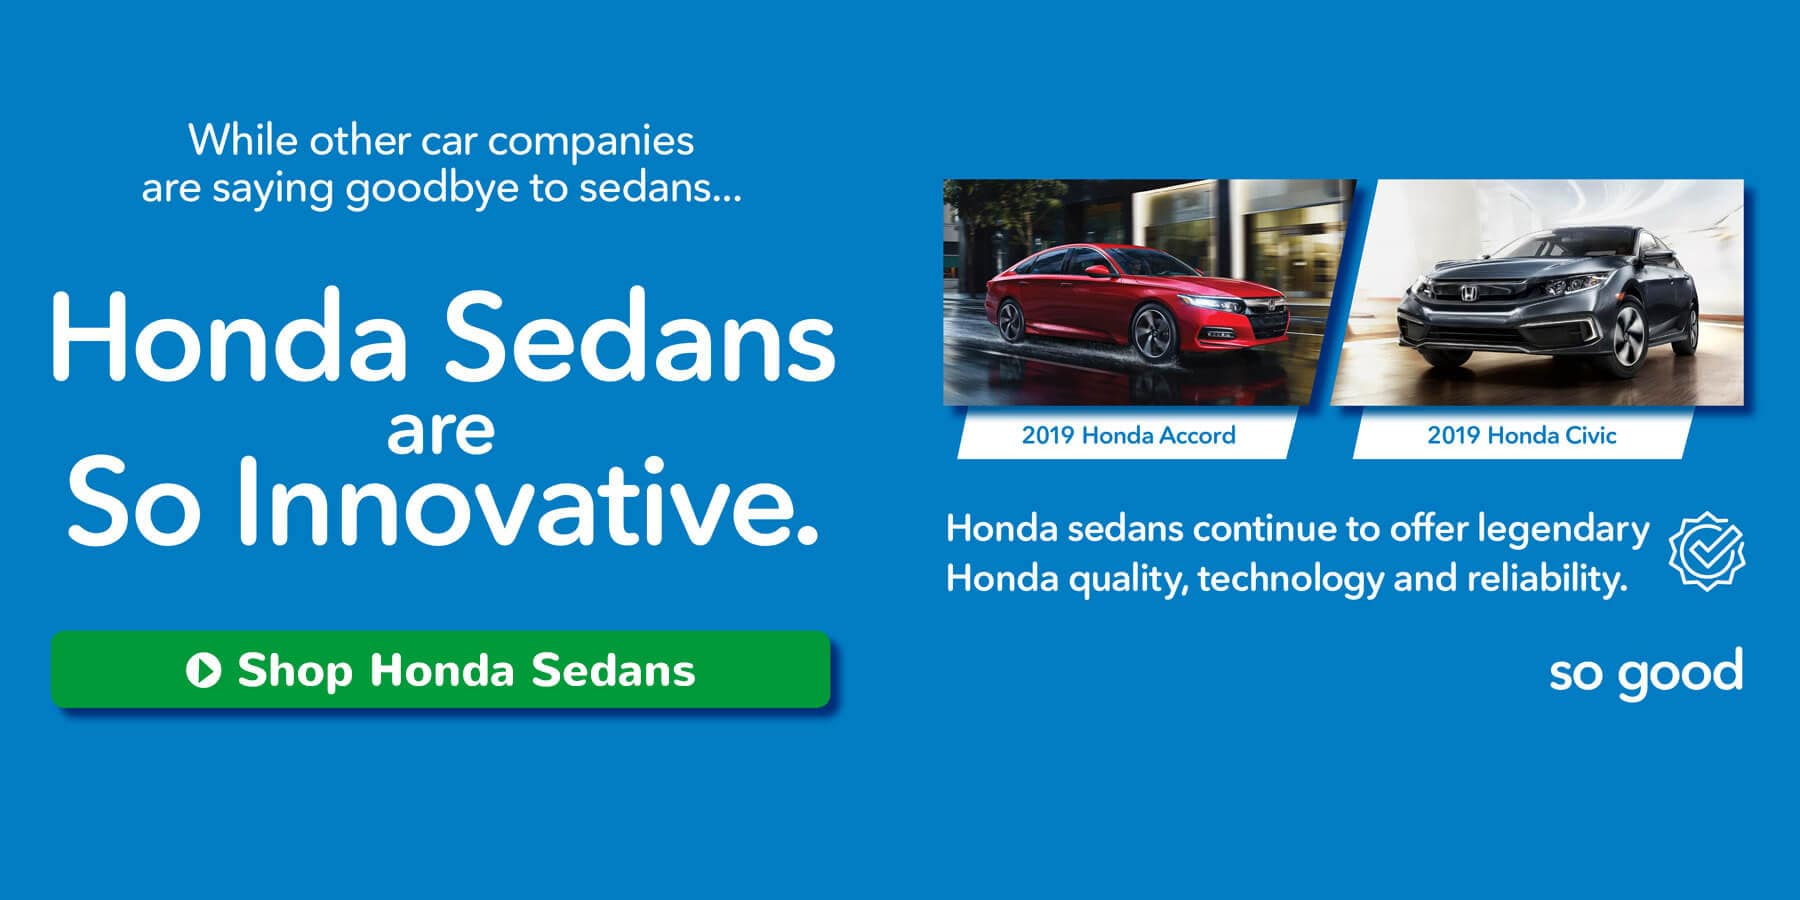 Capital Region Honda Dealers Honda Sedans HP Slide